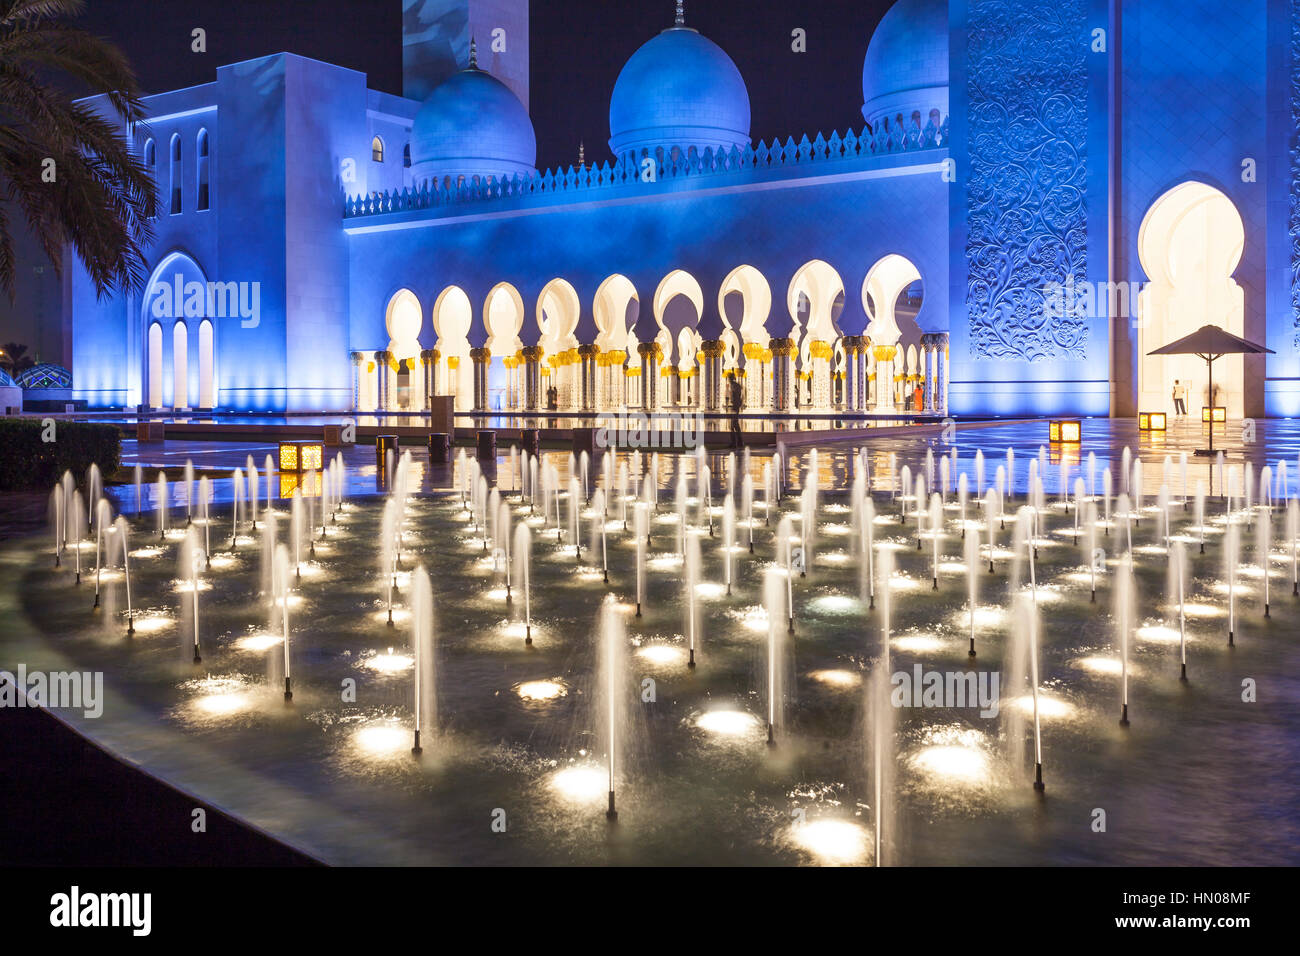 Sheikh Zayed Grand Mosque illuminated at night. Abu Dhabi, United Arab Emirates, Middle East Stock Photo